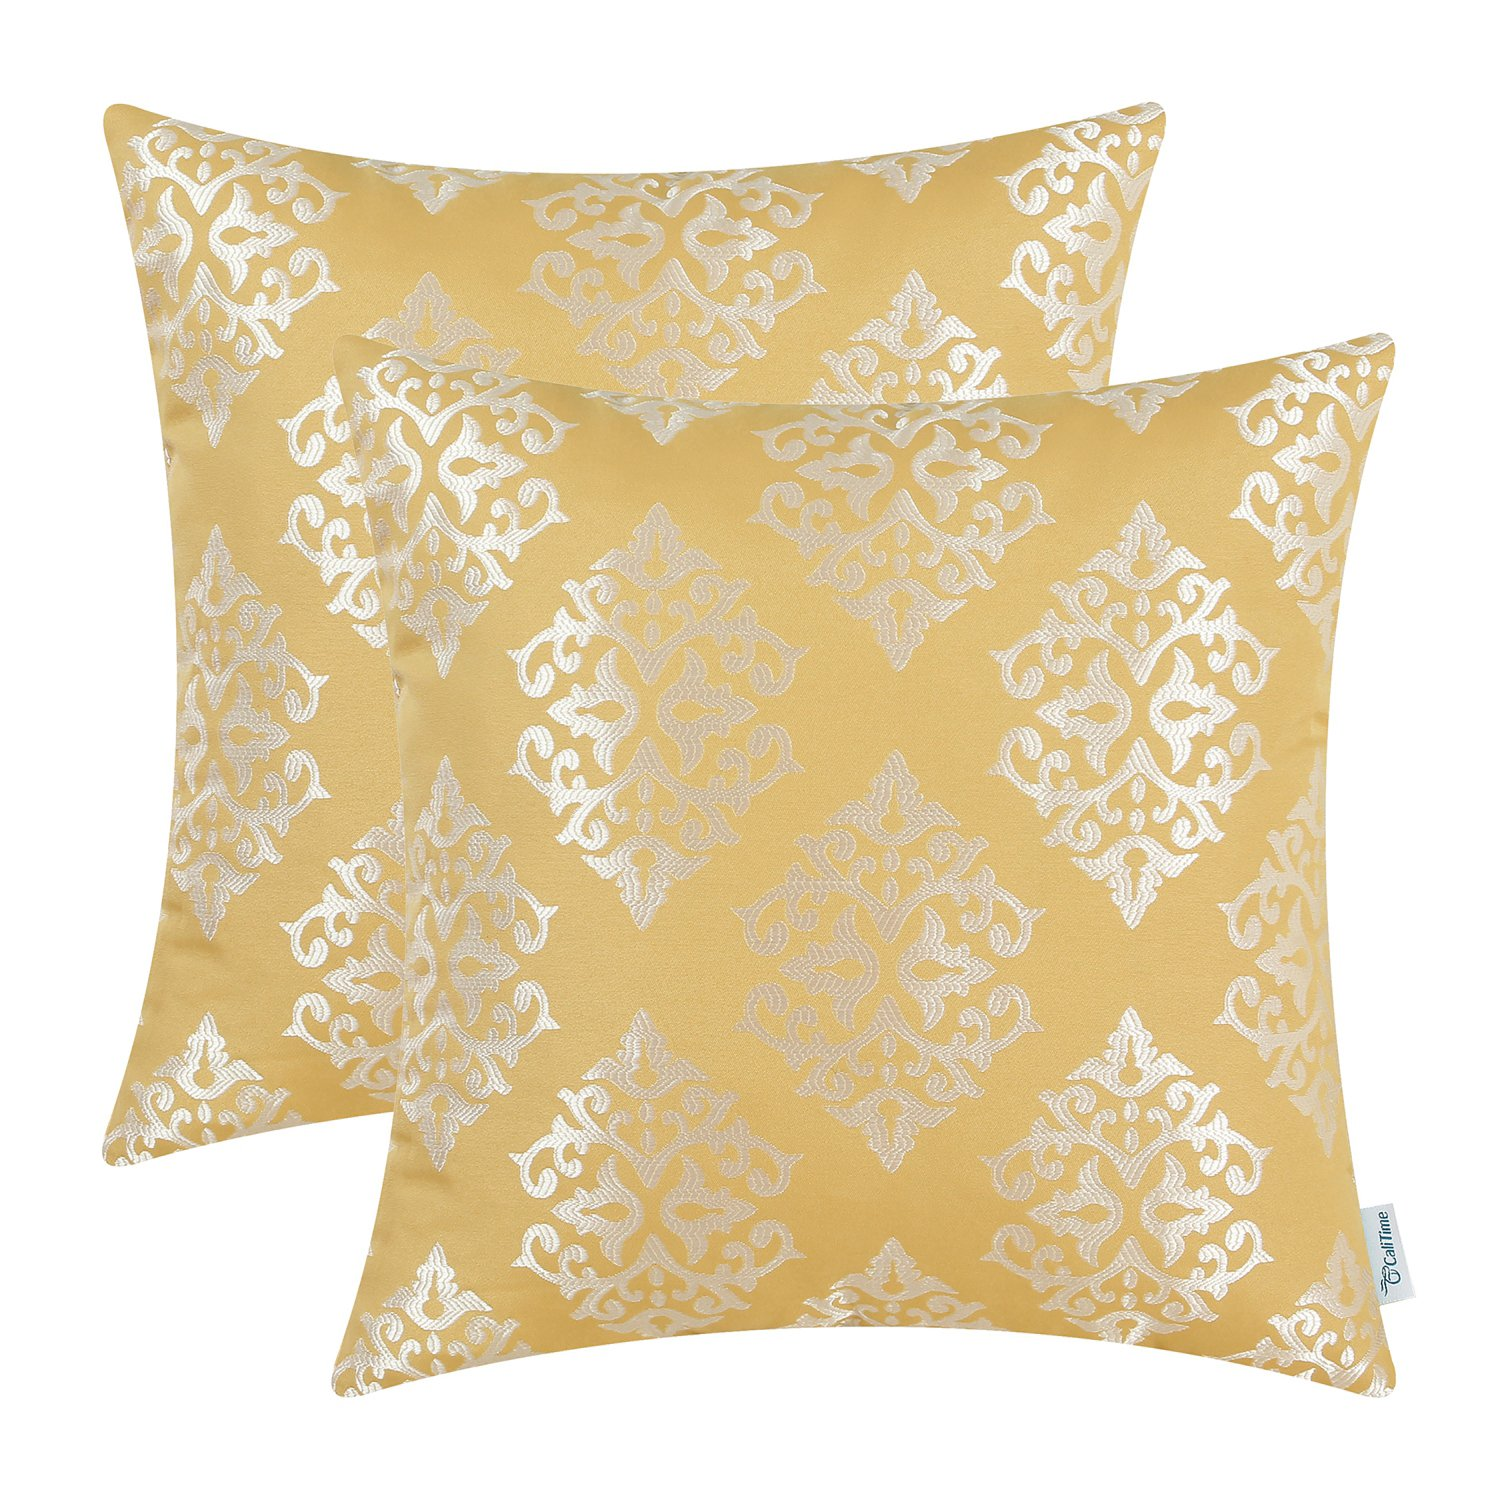 CaliTime Pack of 2 Soft Jacquard Throw Pillow Covers Cases Couch Sofa Home Decoration Vintage Damask Floral 18 X 18 inches Gold